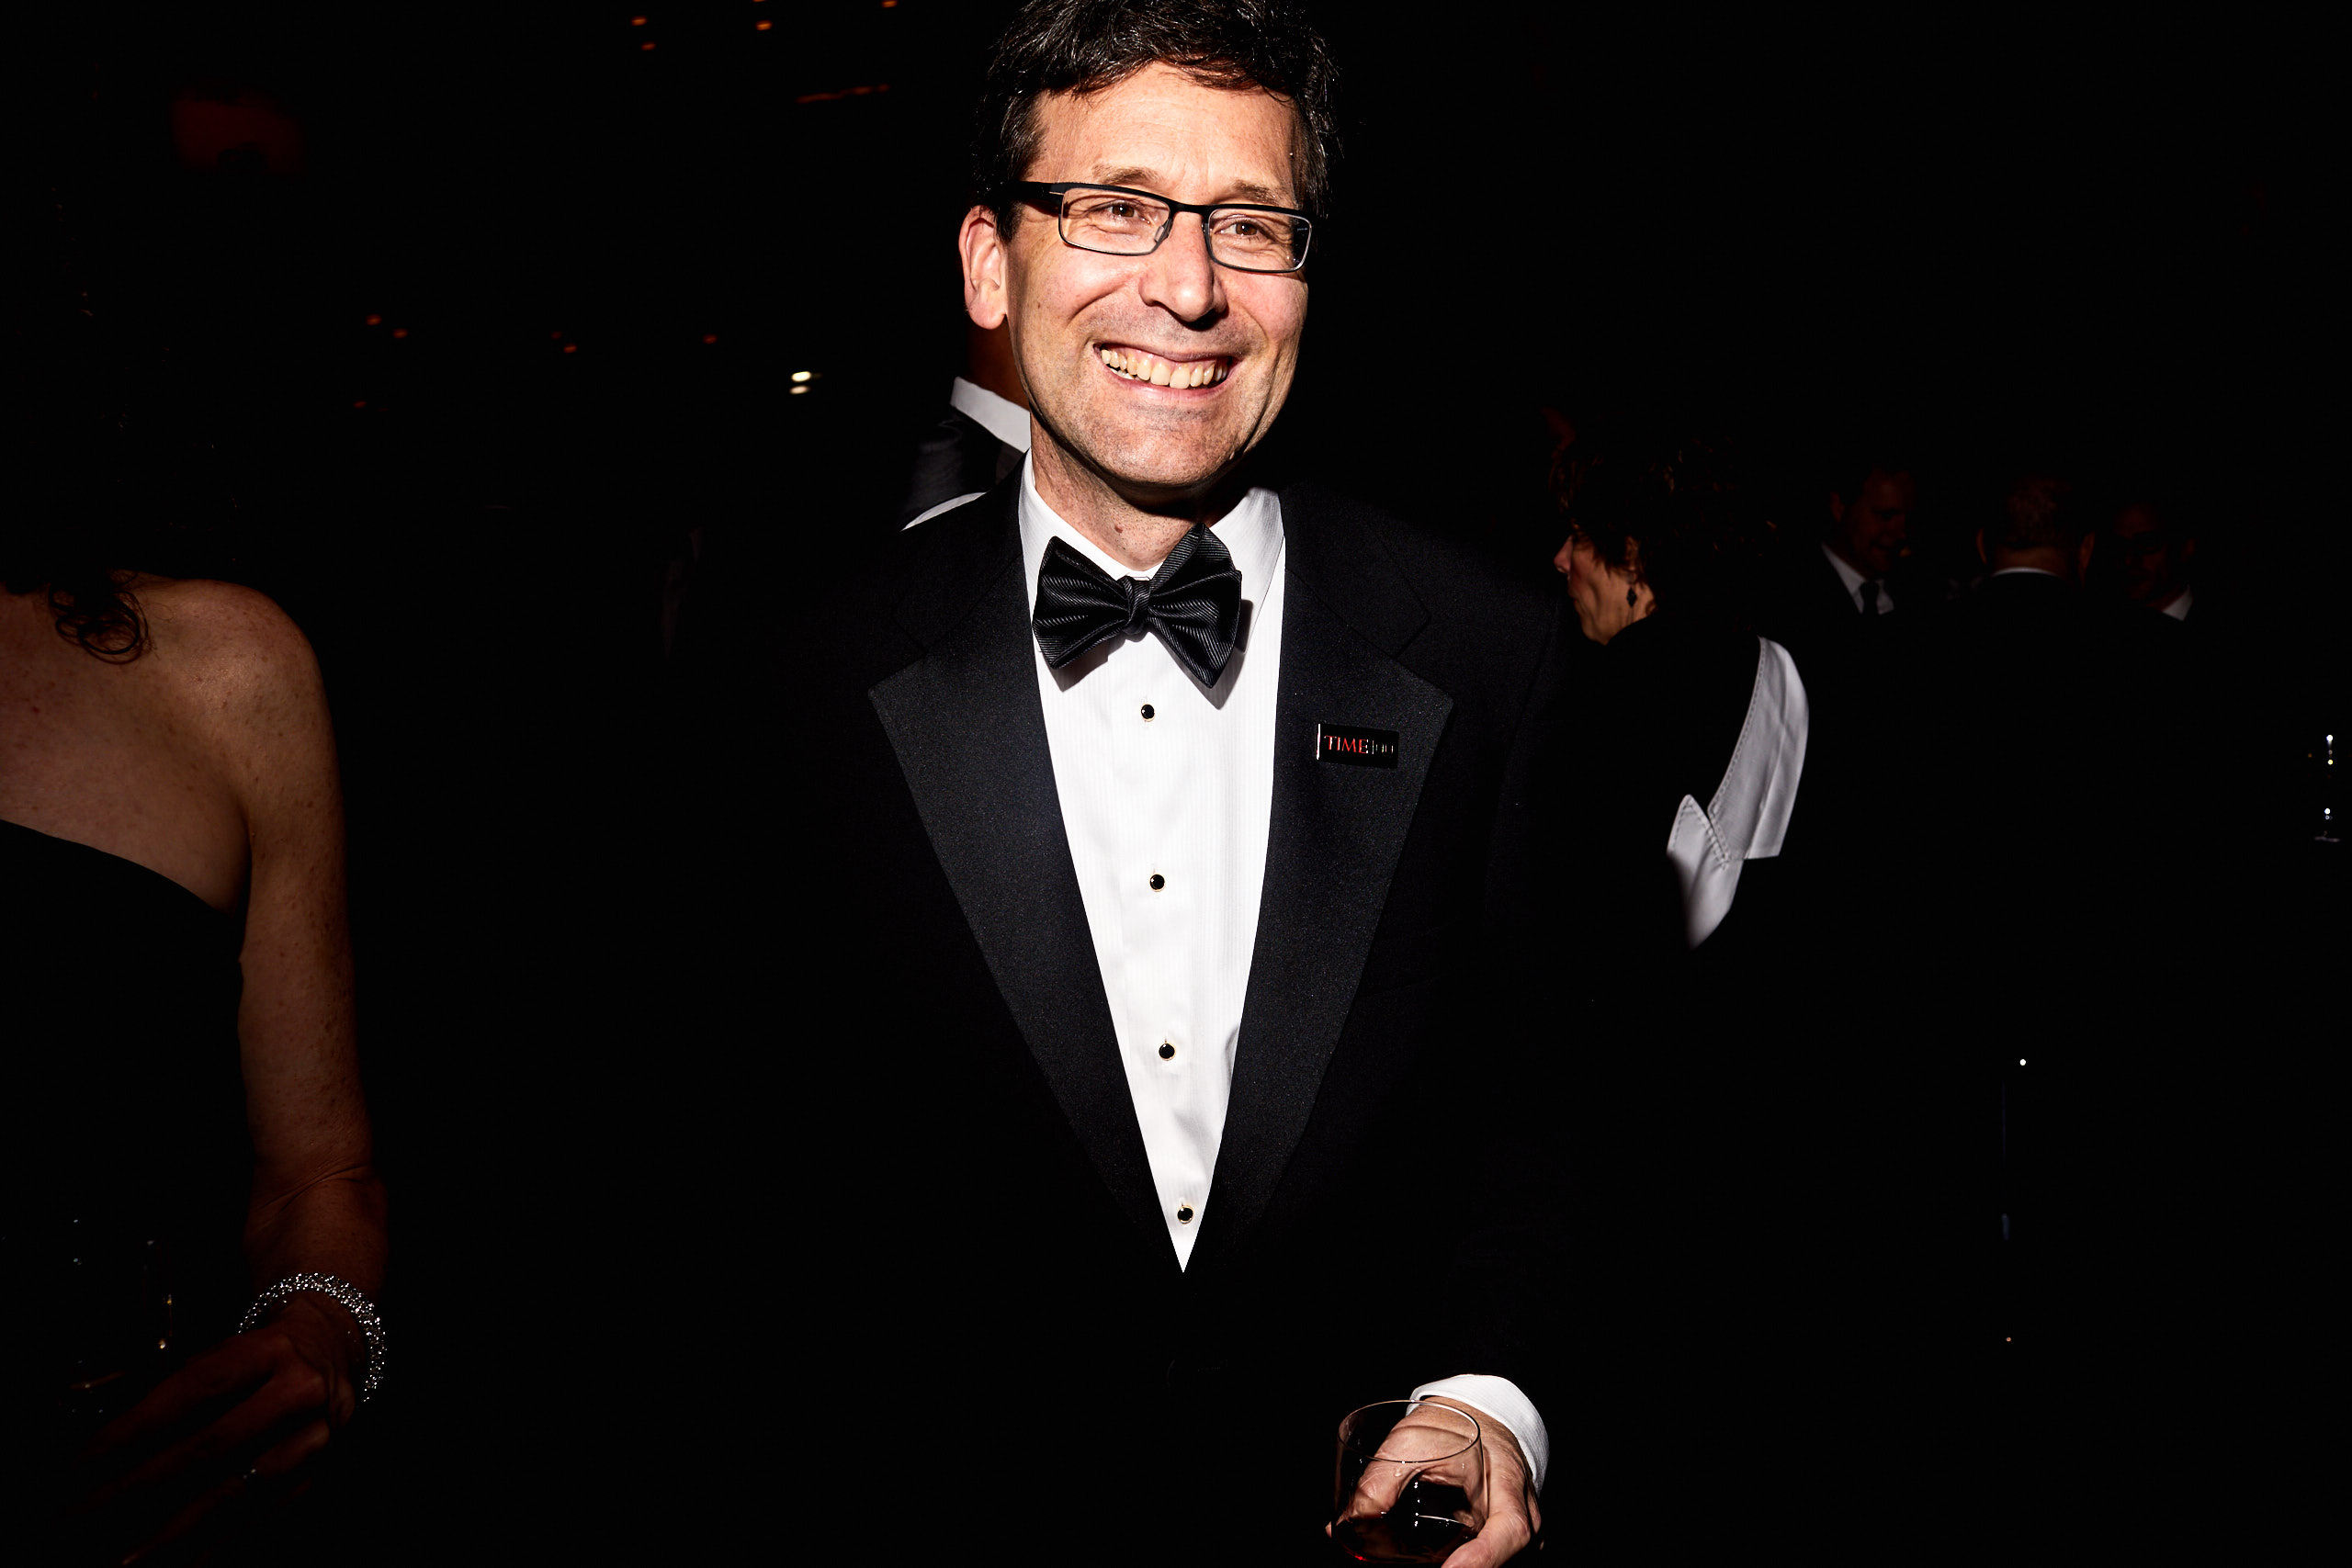 Bob Ferguson at the Time 100 Gala at Jazz at Lincoln Center on April 25, 2017 in New York City.